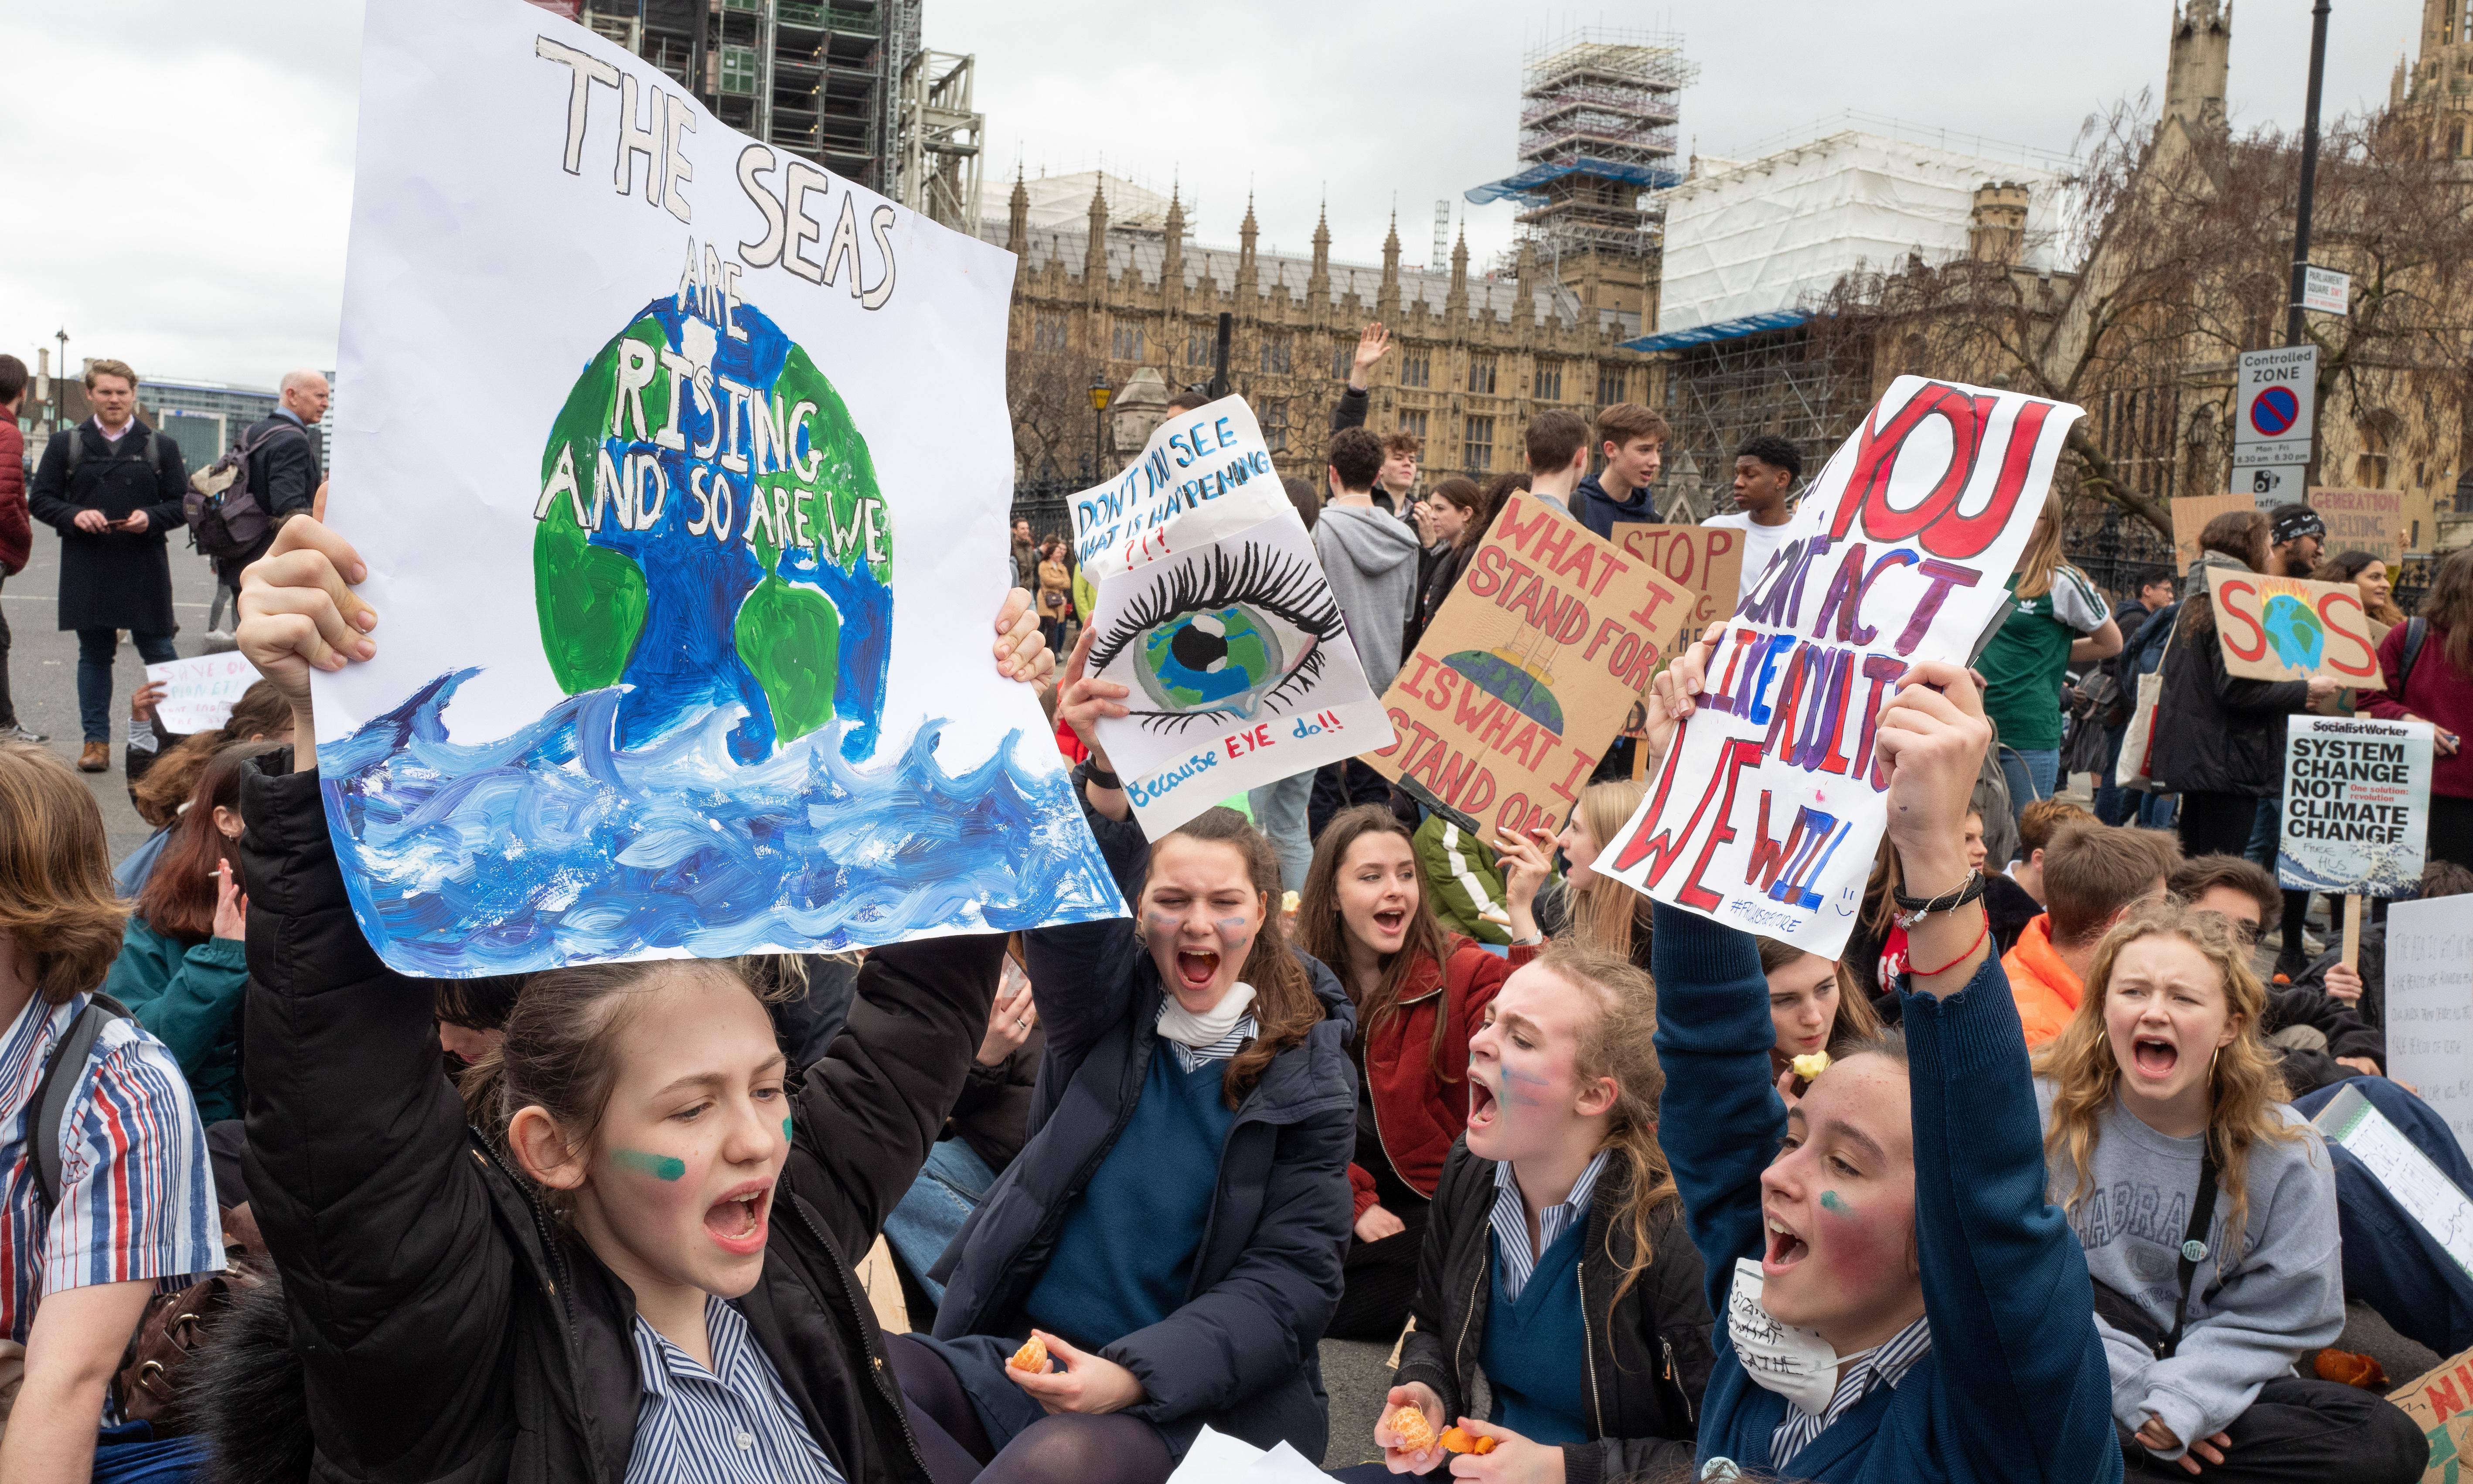 Labour is right: it's crucial that children are taught about climate breakdown in school